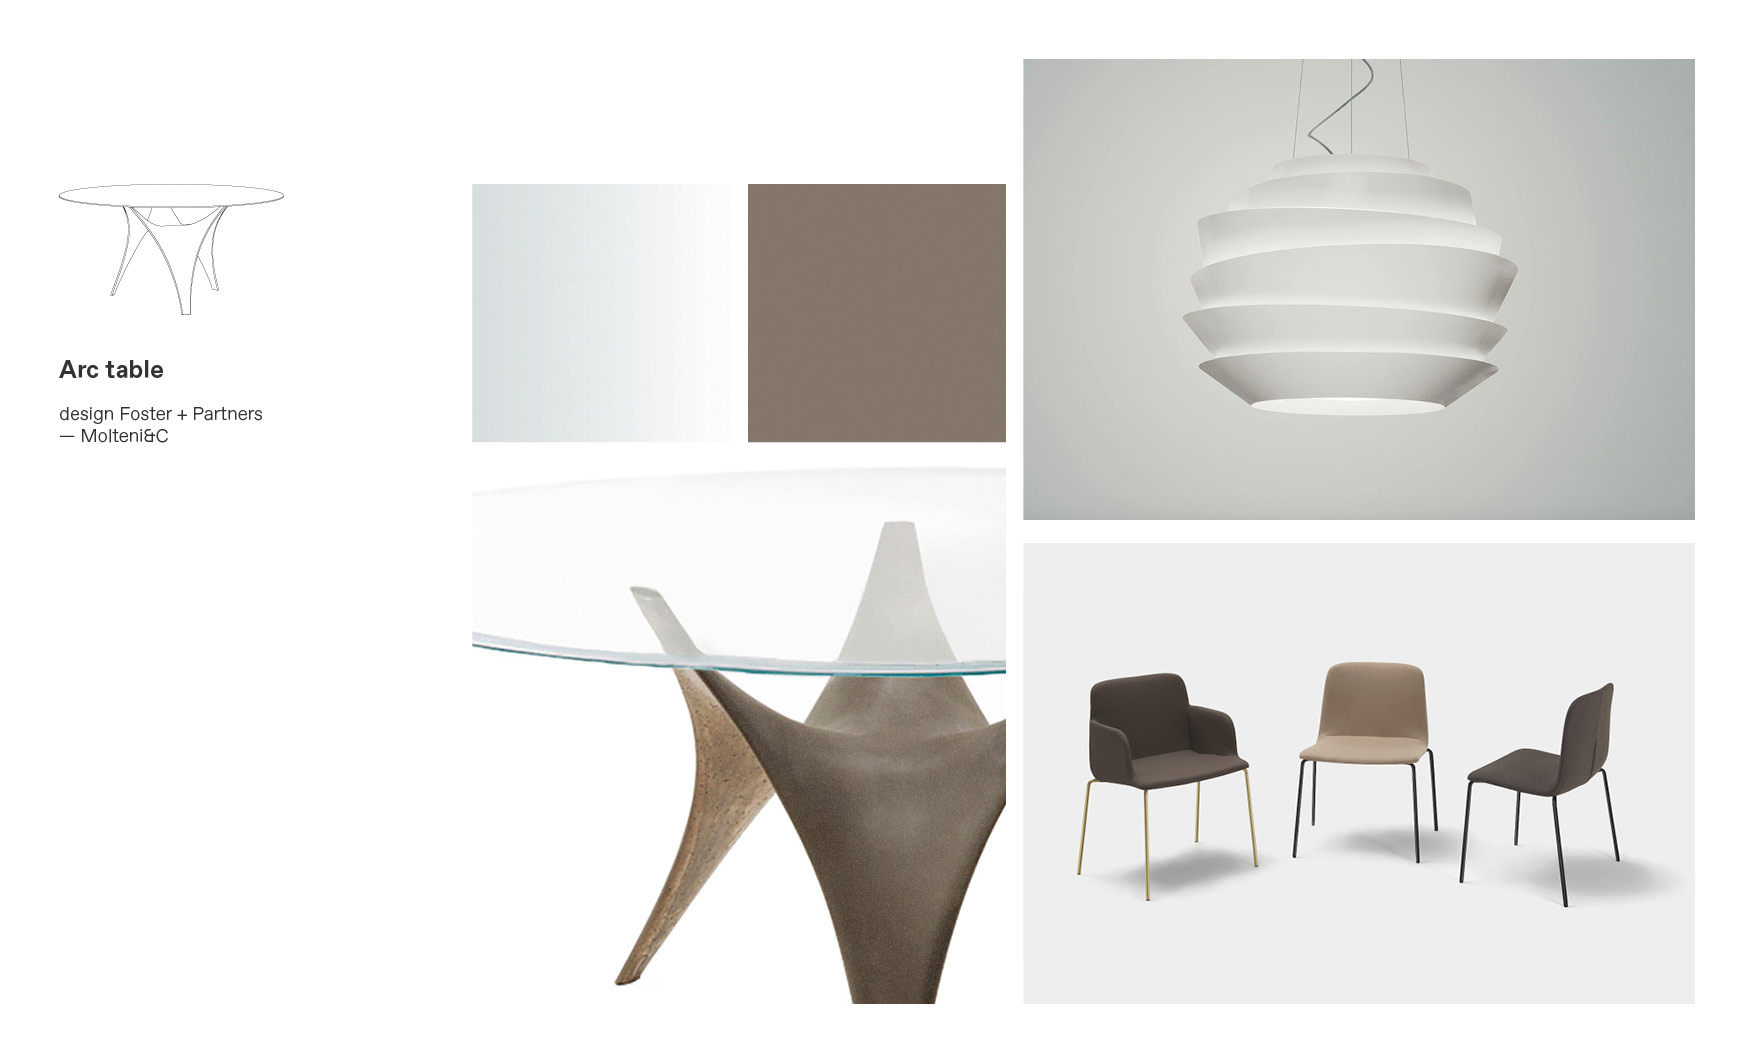 Molteni dining tables and Arc Table moodboard composition by Esperiri